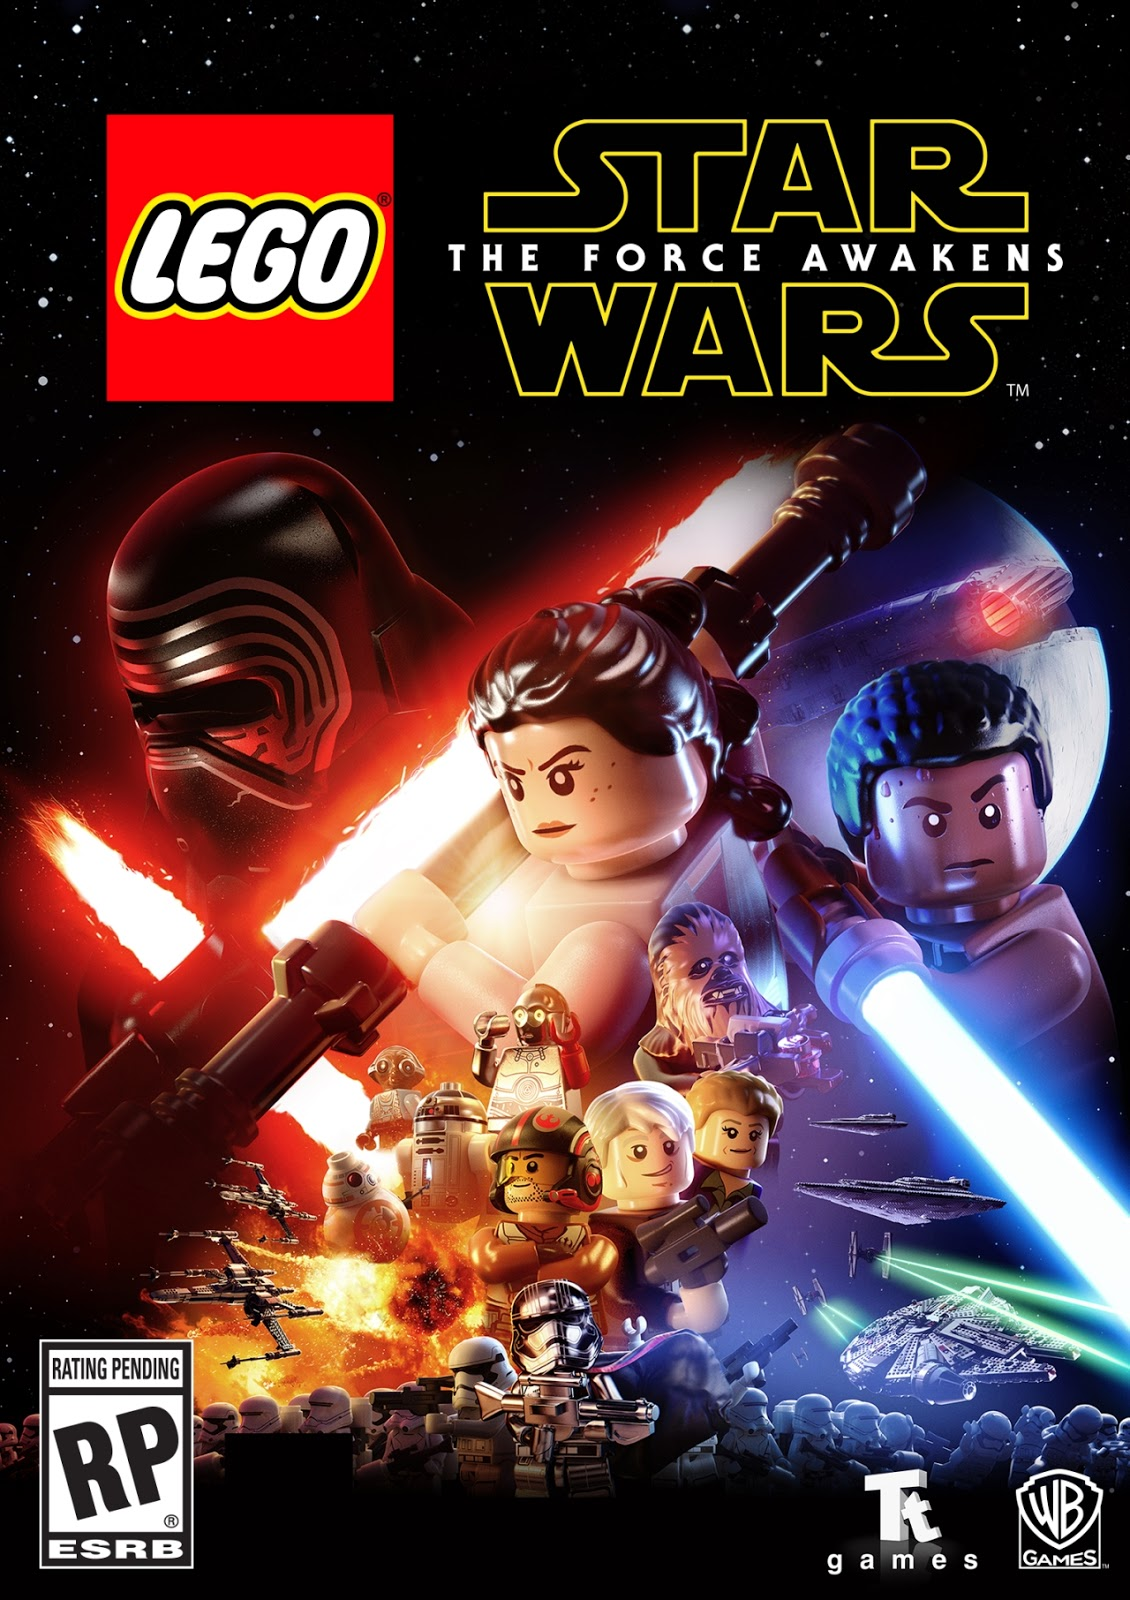 The Brickverse: Lego Star Wars: The Force Awakens video game on the way!